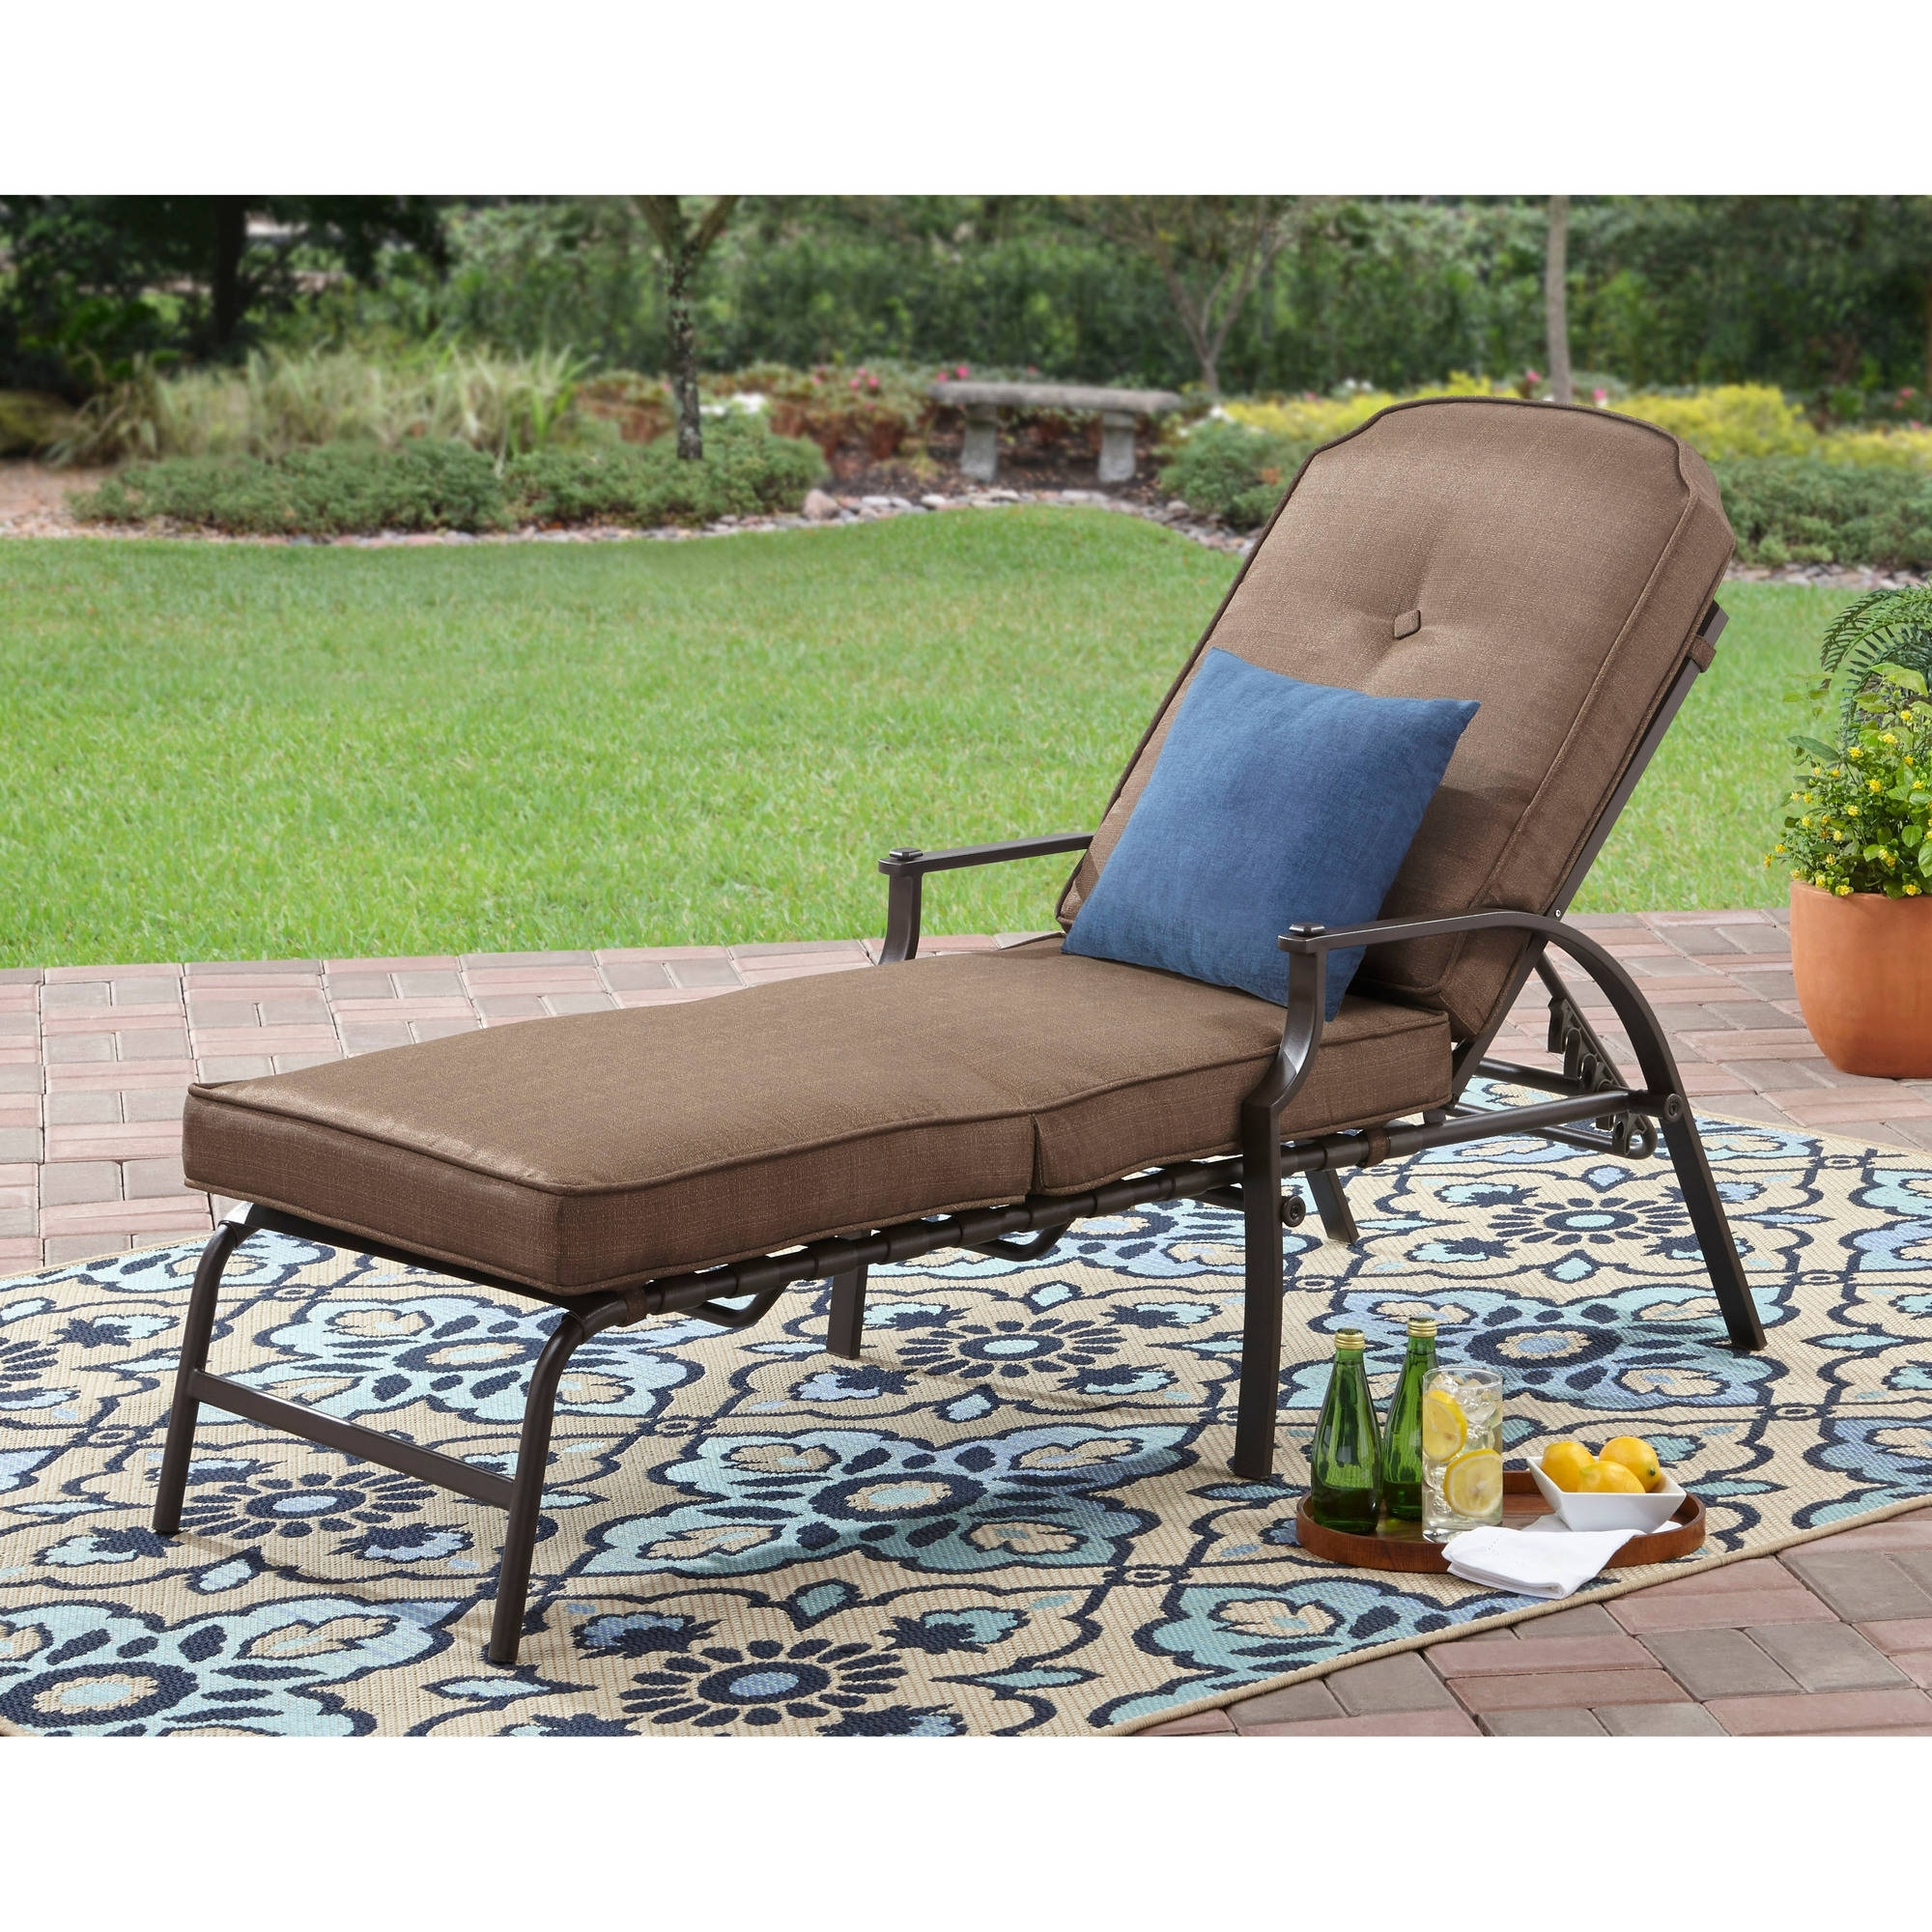 Mainstays Wentworth Chaise Lounge – Walmart With Regard To Trendy Chaise Lounge Chairs At Walmart (View 13 of 15)